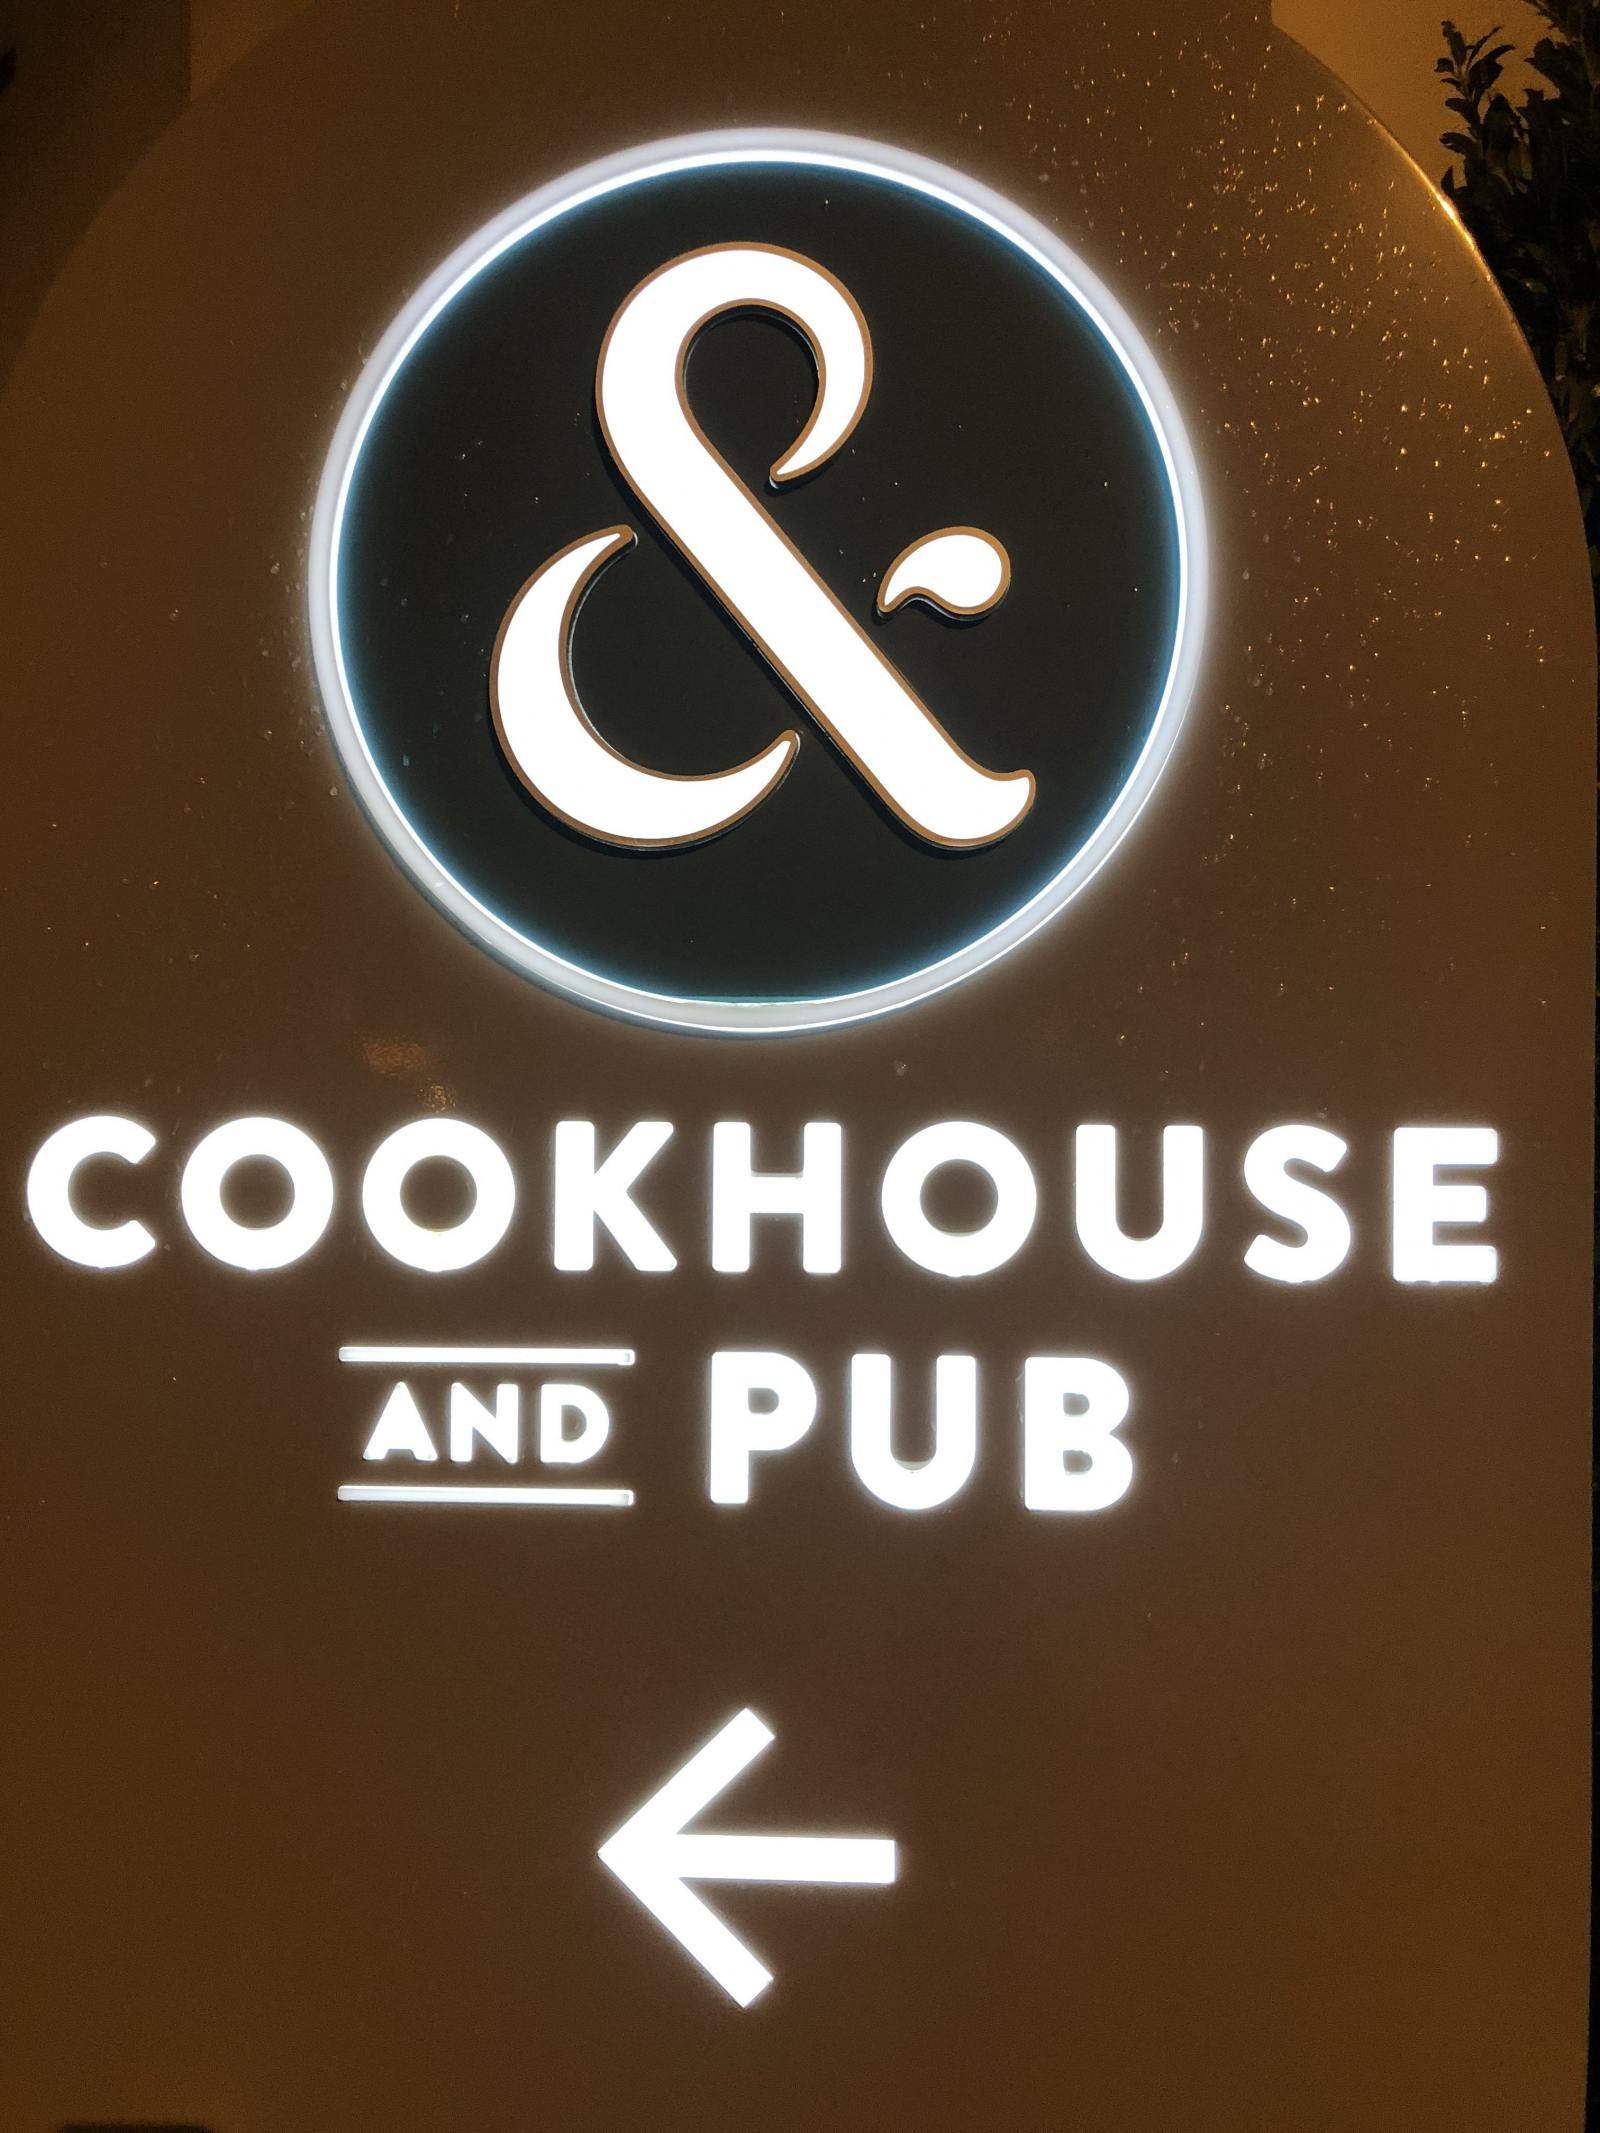 cookhouse and pub sign in the rain